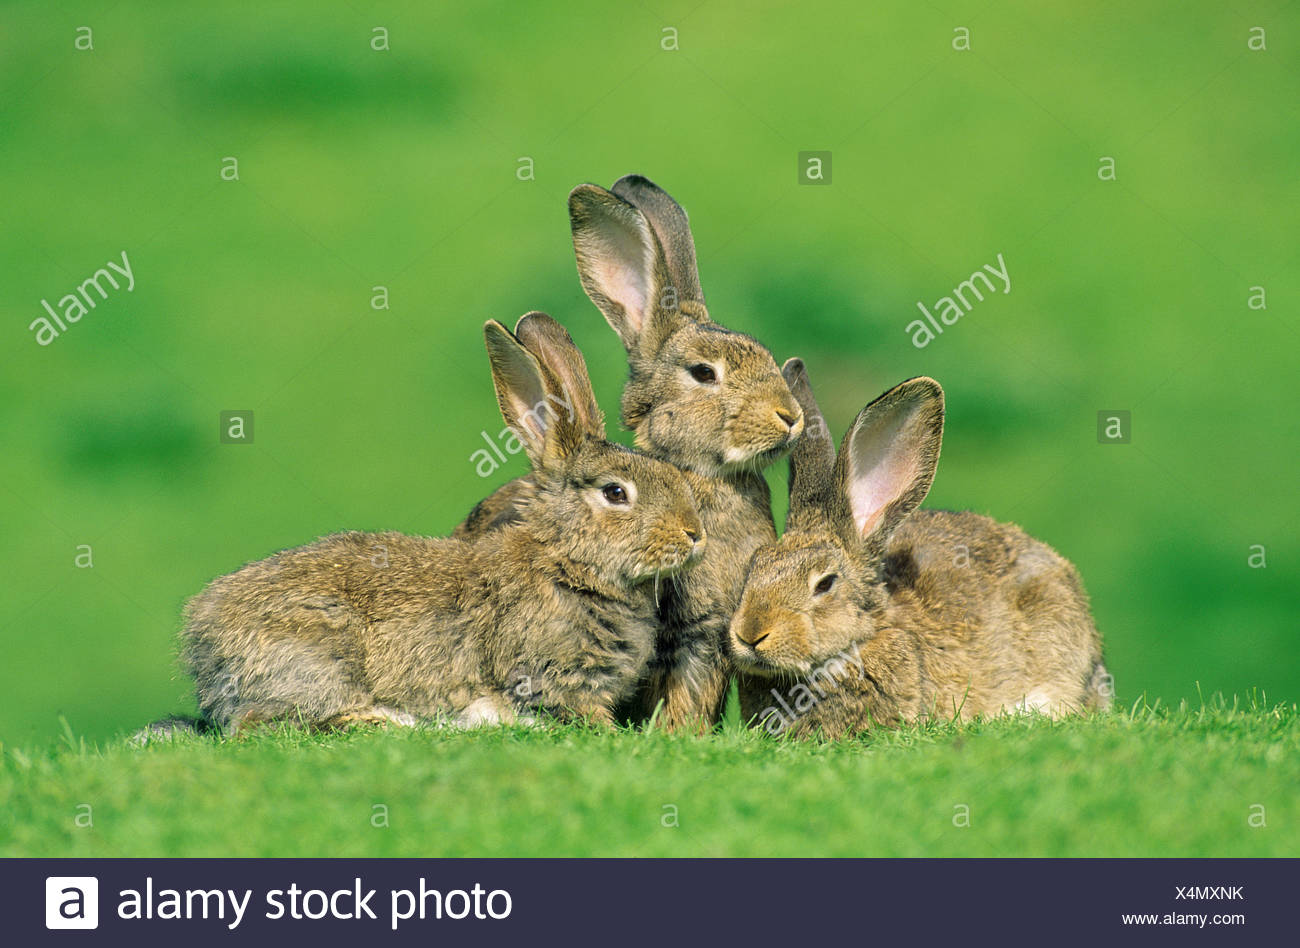 European Rabbit (Oryctolagus cuniculus). Three individuals on a meadow - Stock Image